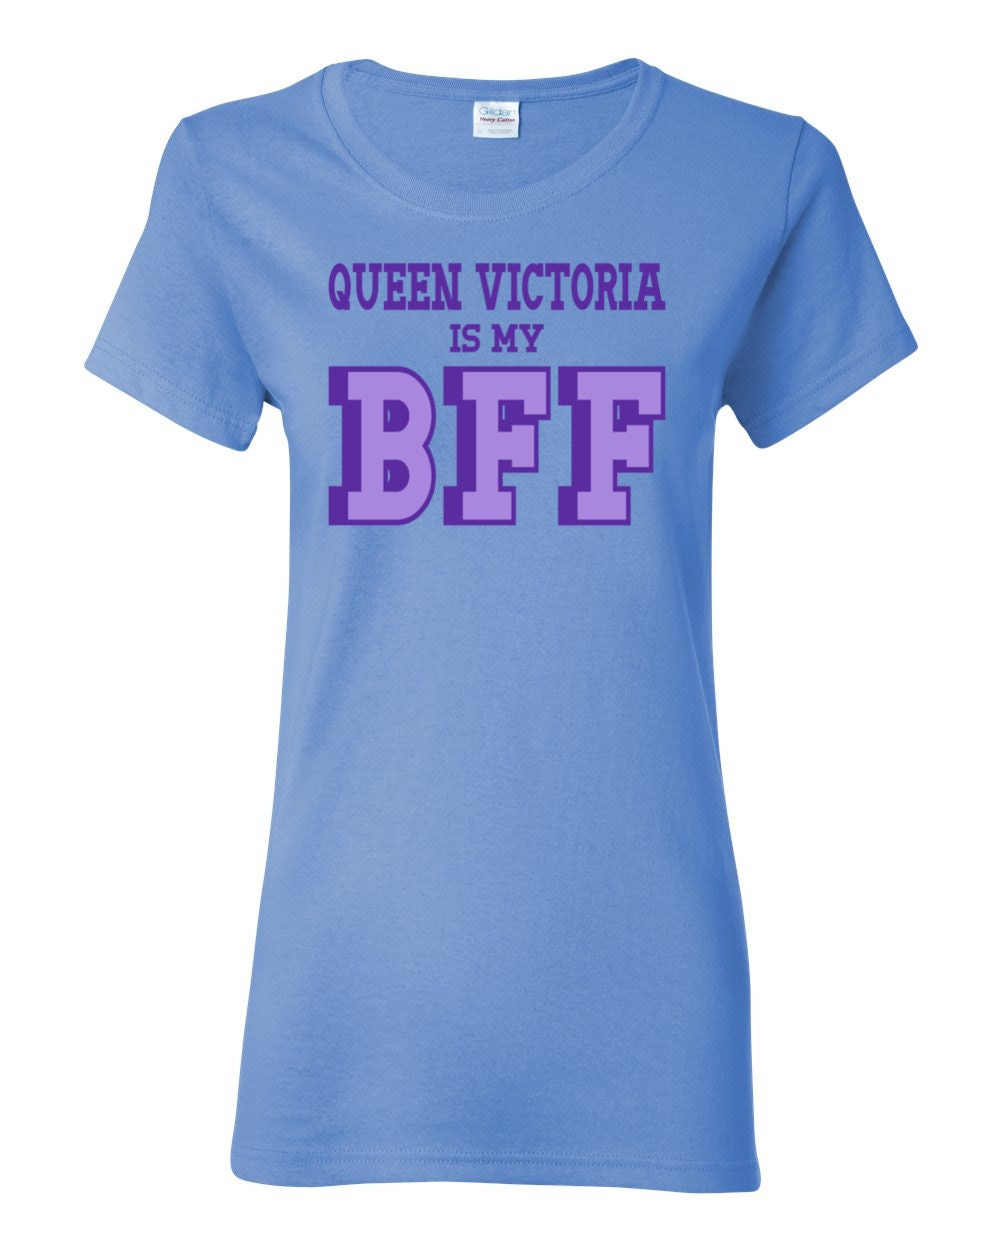 Great Women of History - Queen Victoria is my BFF Womens History T-shirt